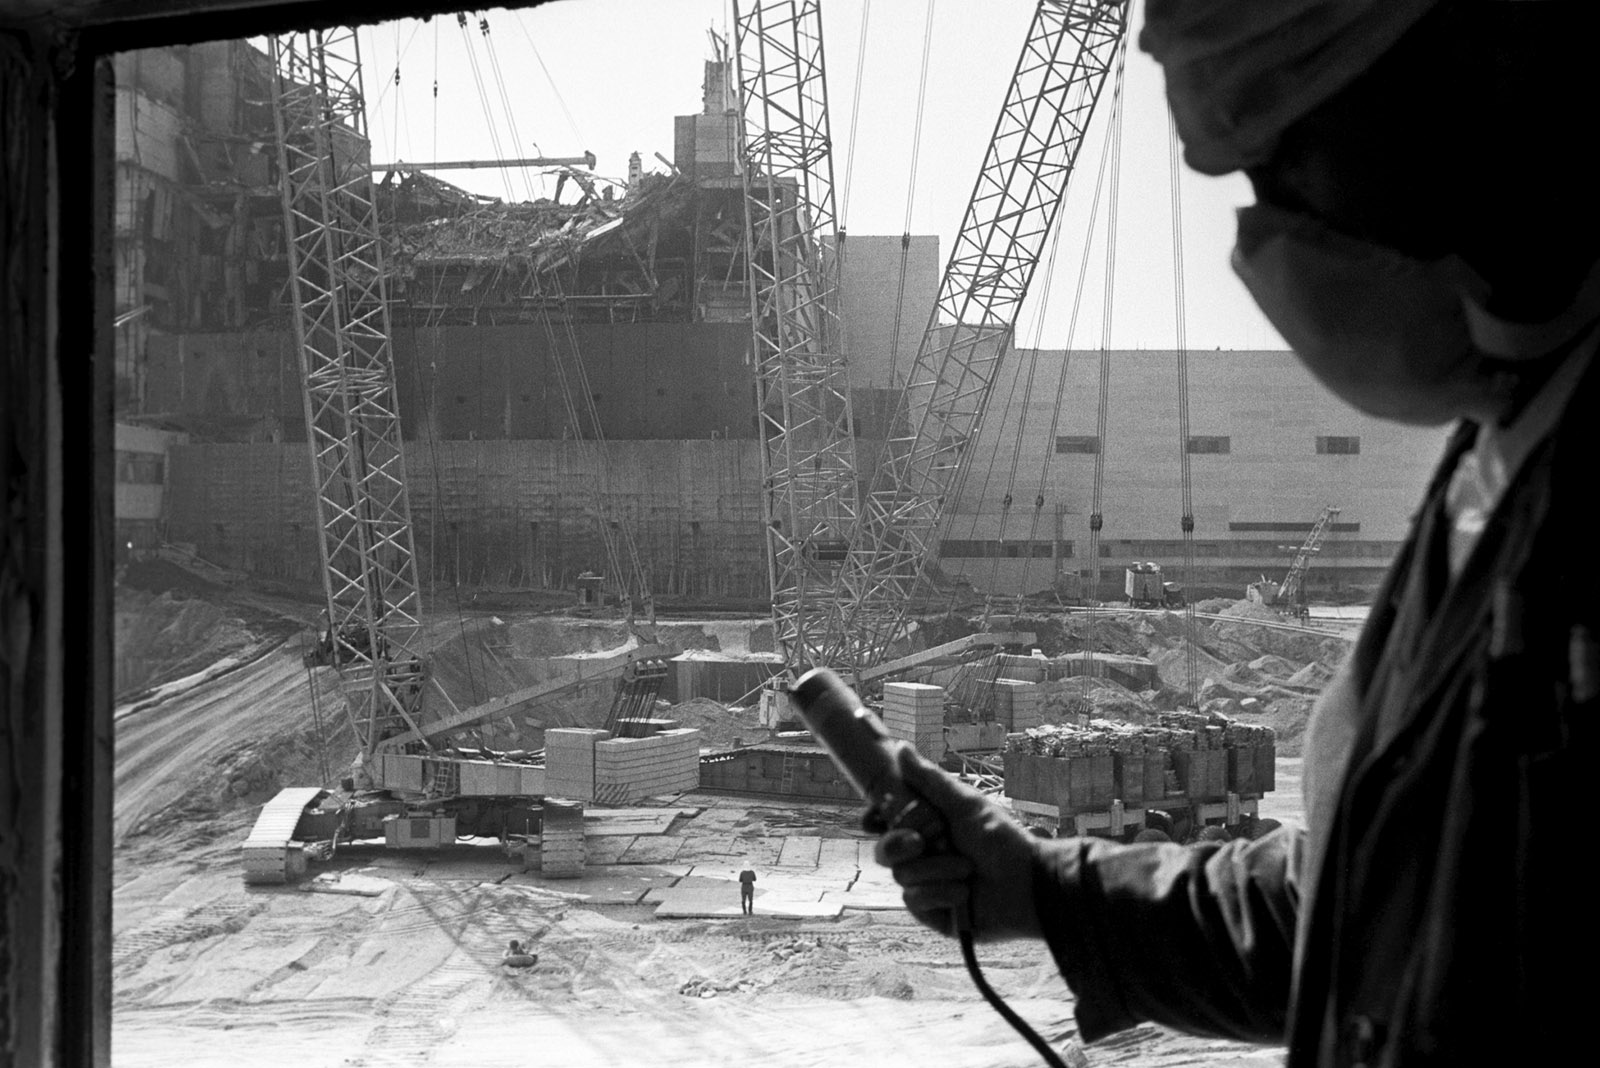 A worker measuring radiation after the explosion at the Chernobyl nuclear power plant in northern Ukraine, August 1986